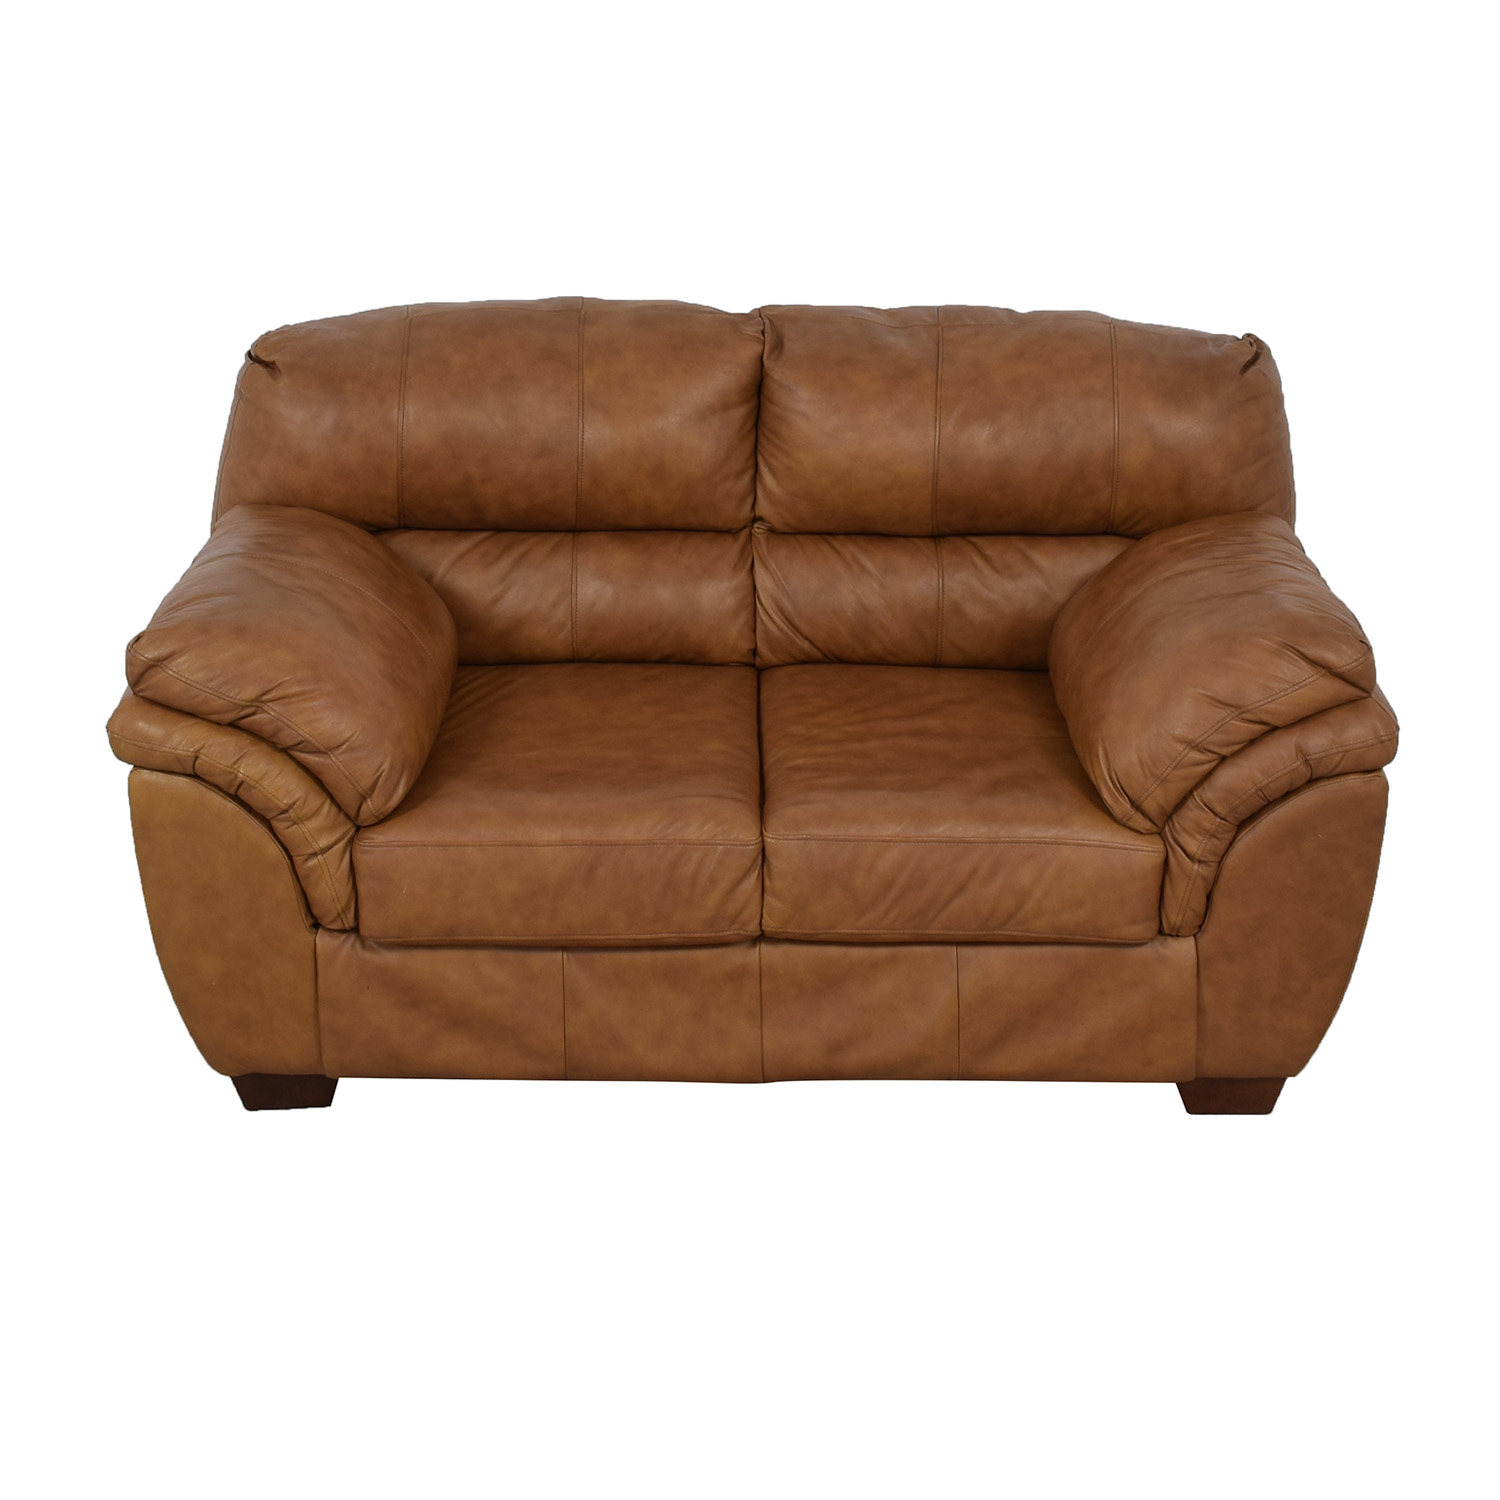 shop Jennifer Convertibles Brown Loveseat Jennifer Convertibles